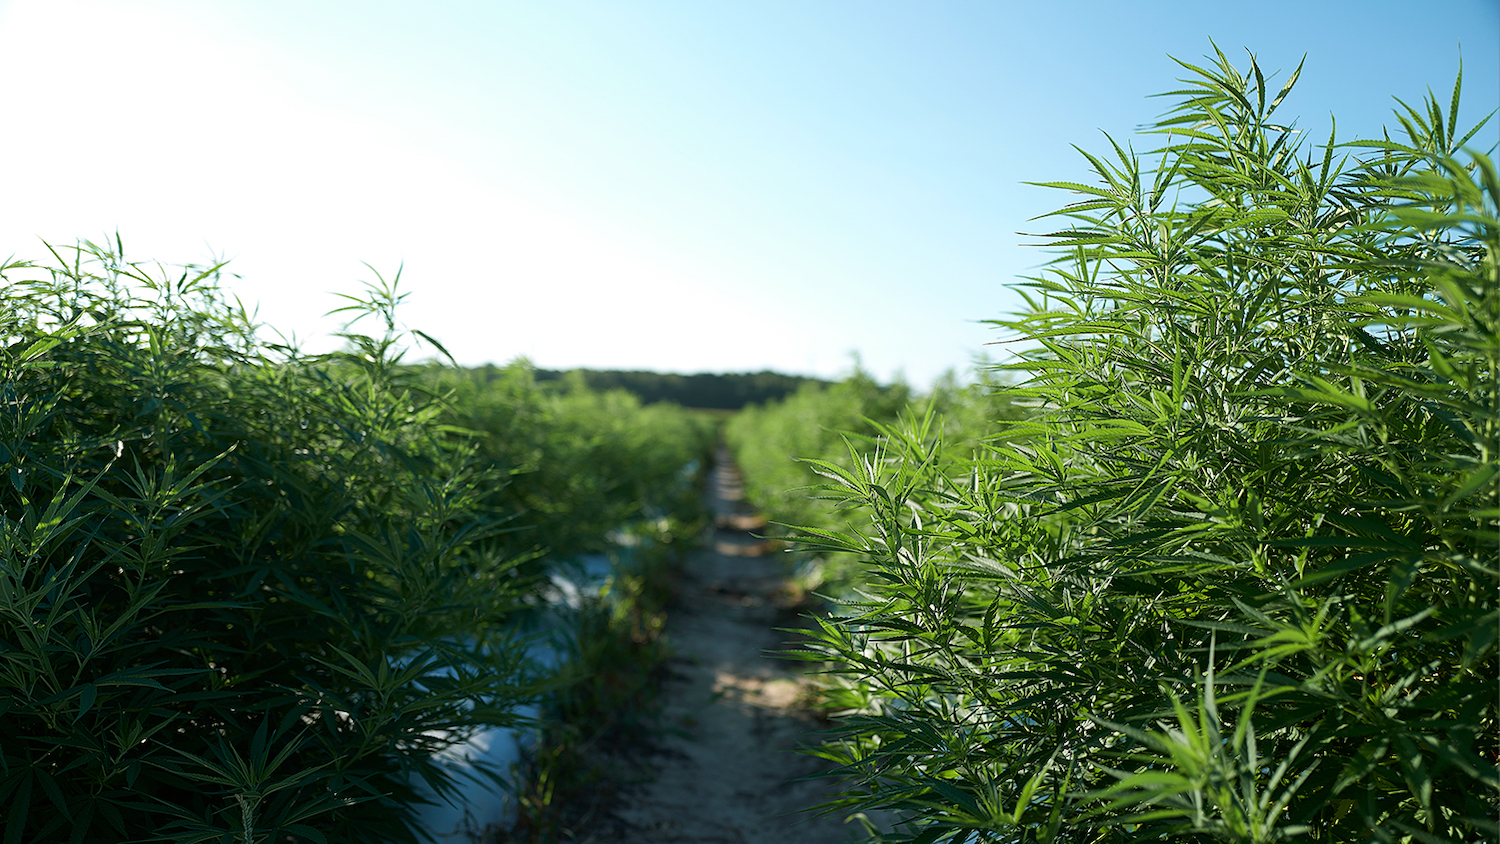 A picture of industrial hemp growing in a field